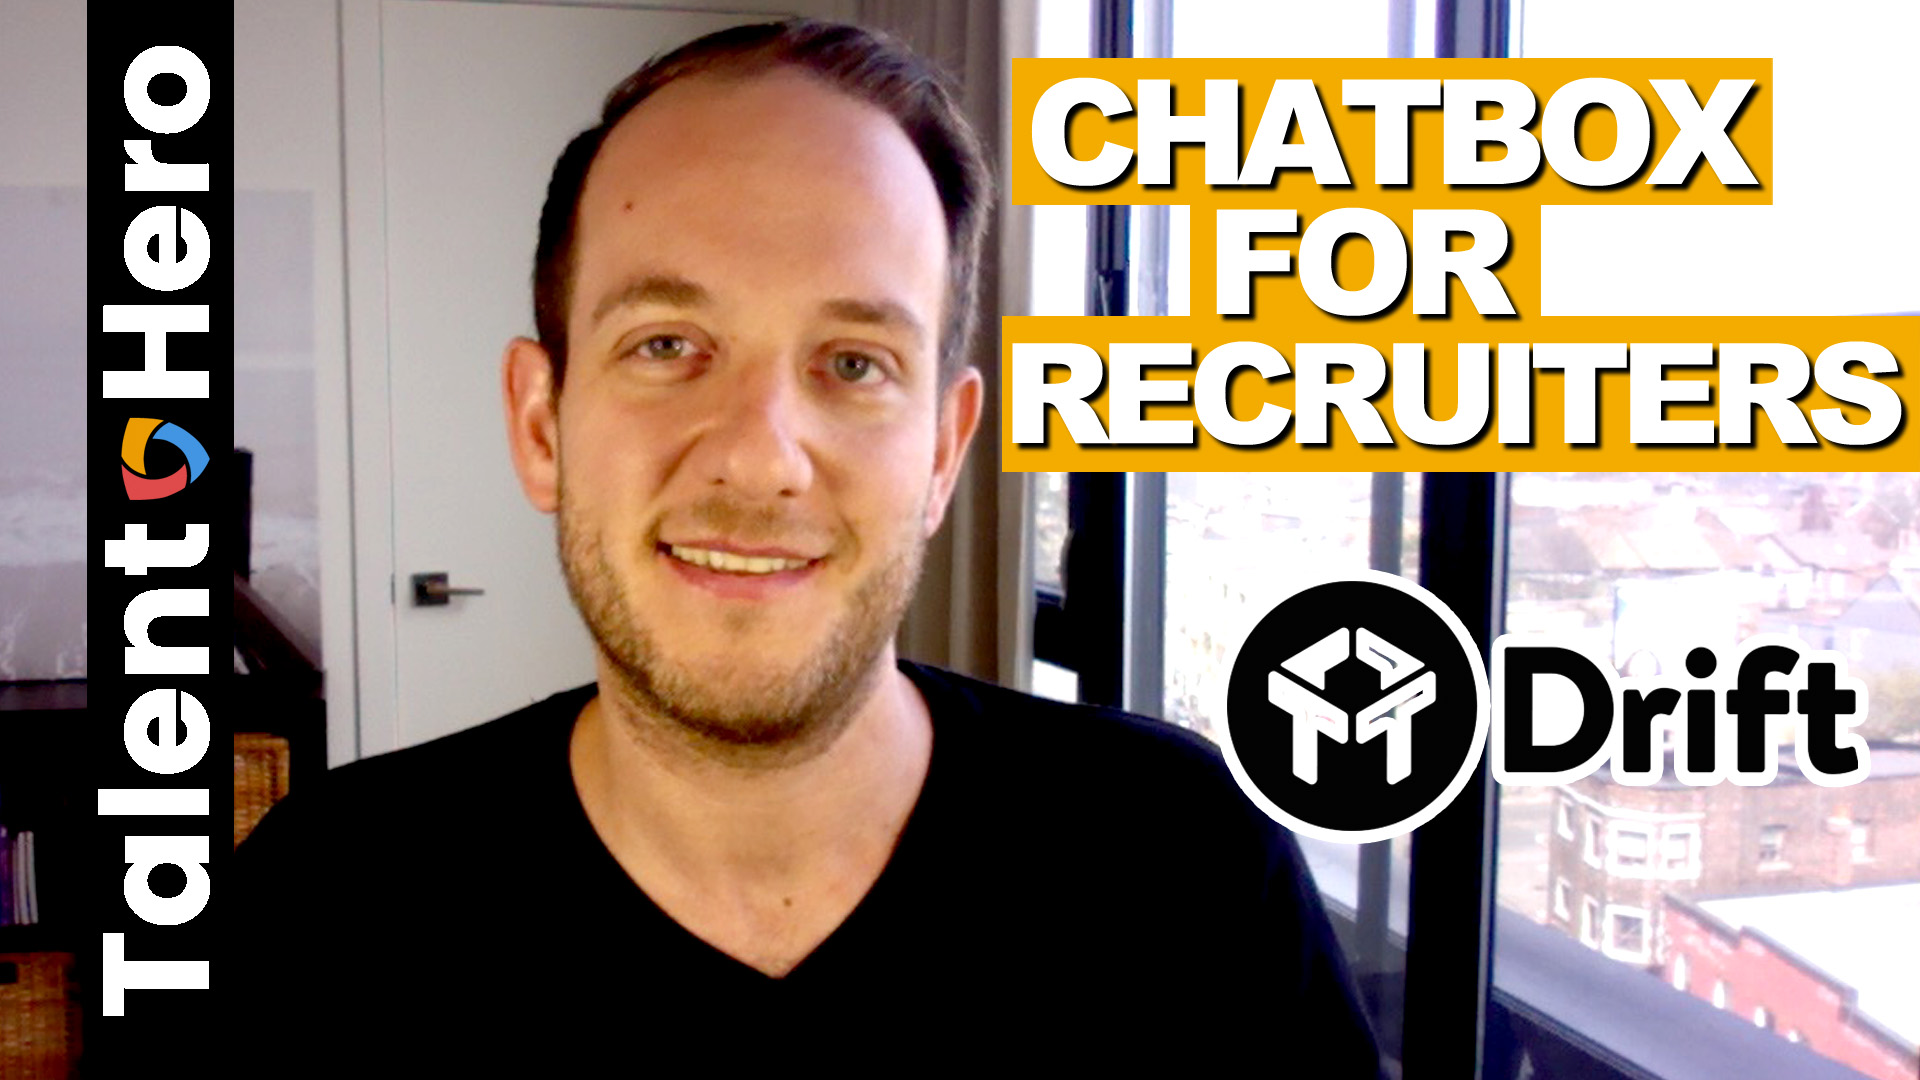 Chatbox for Recruiters Thumbnail